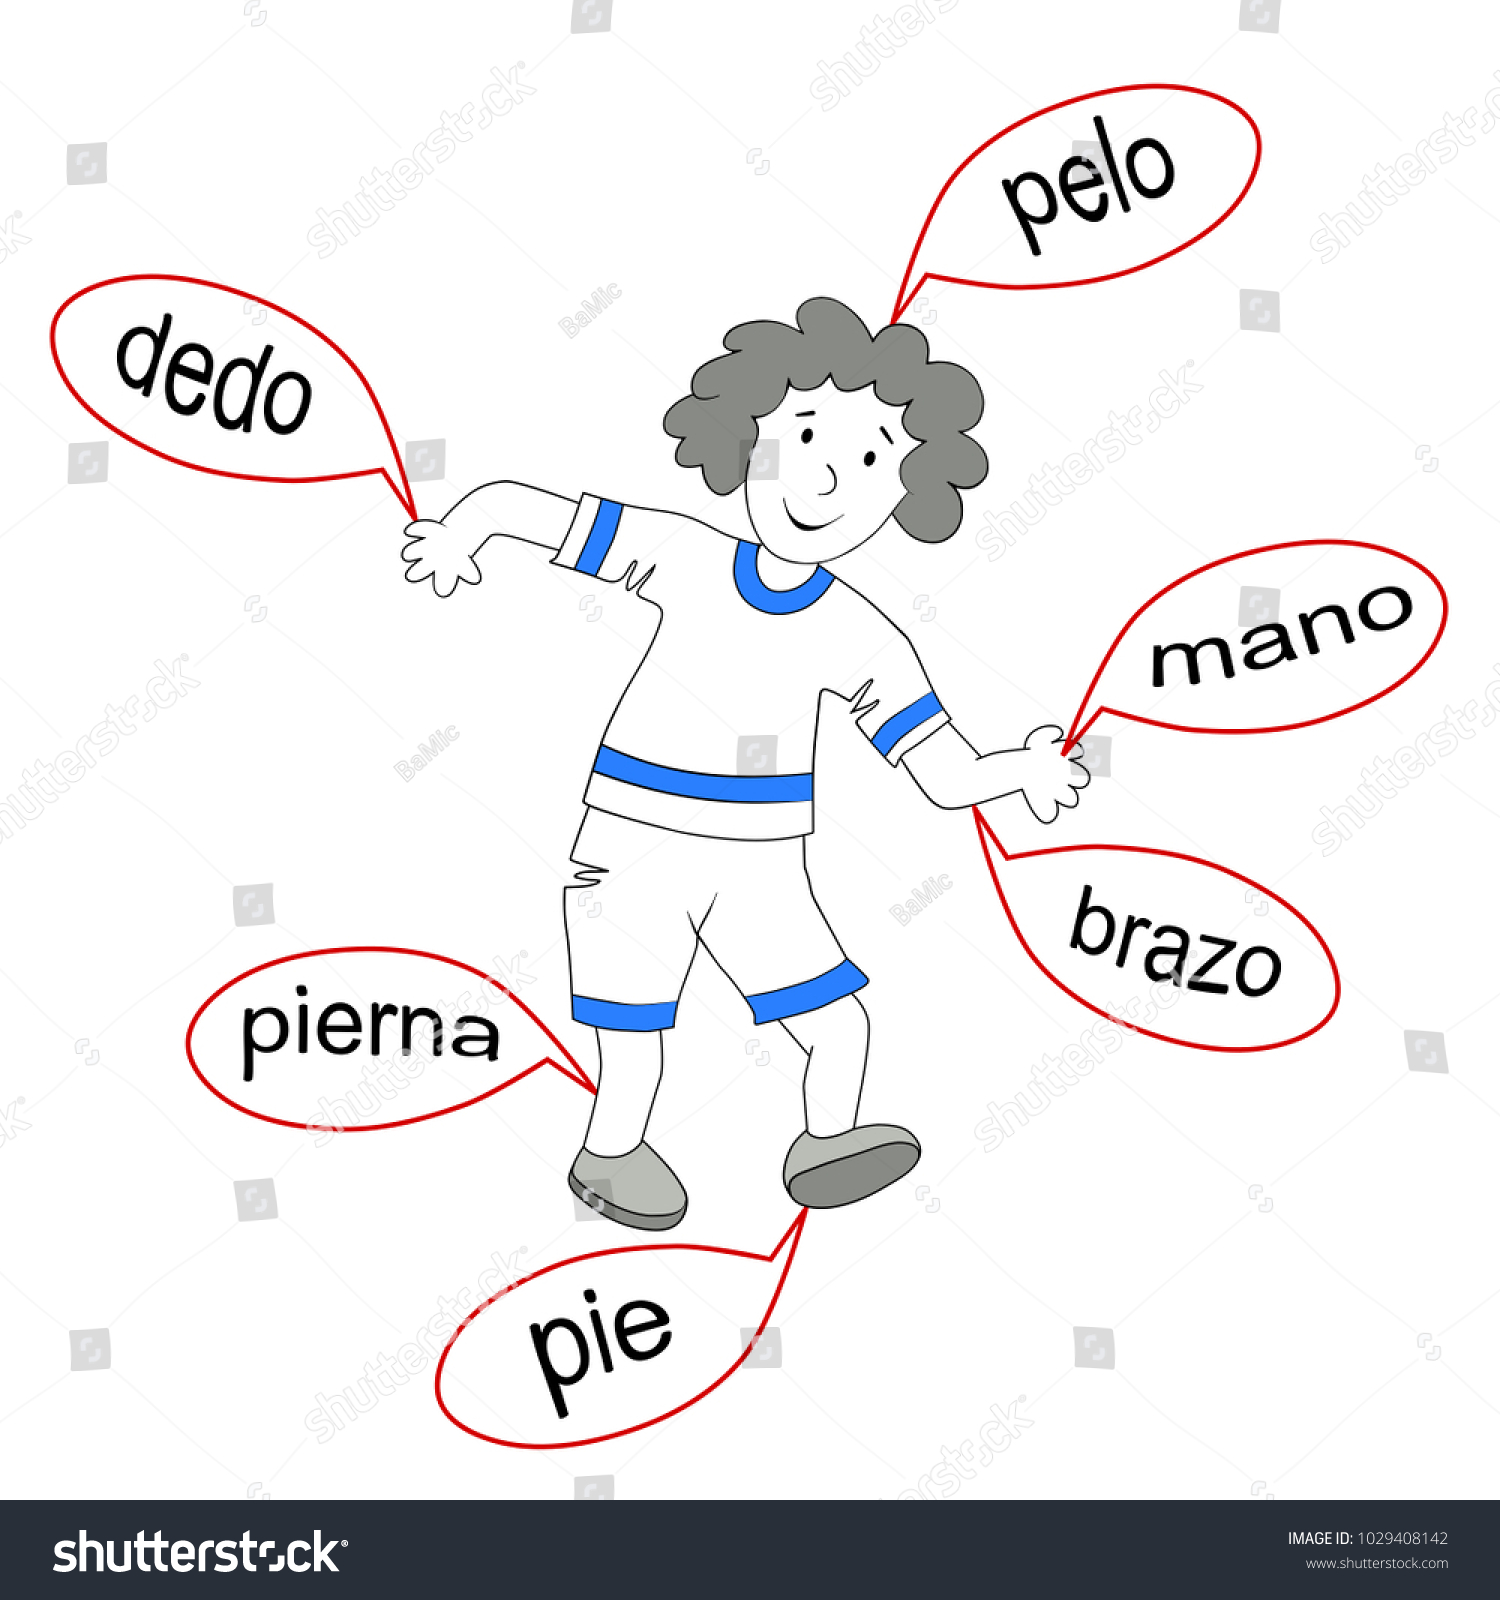 Body Parts Spanish Drawing Boy Basic Stock Vector Royalty Free